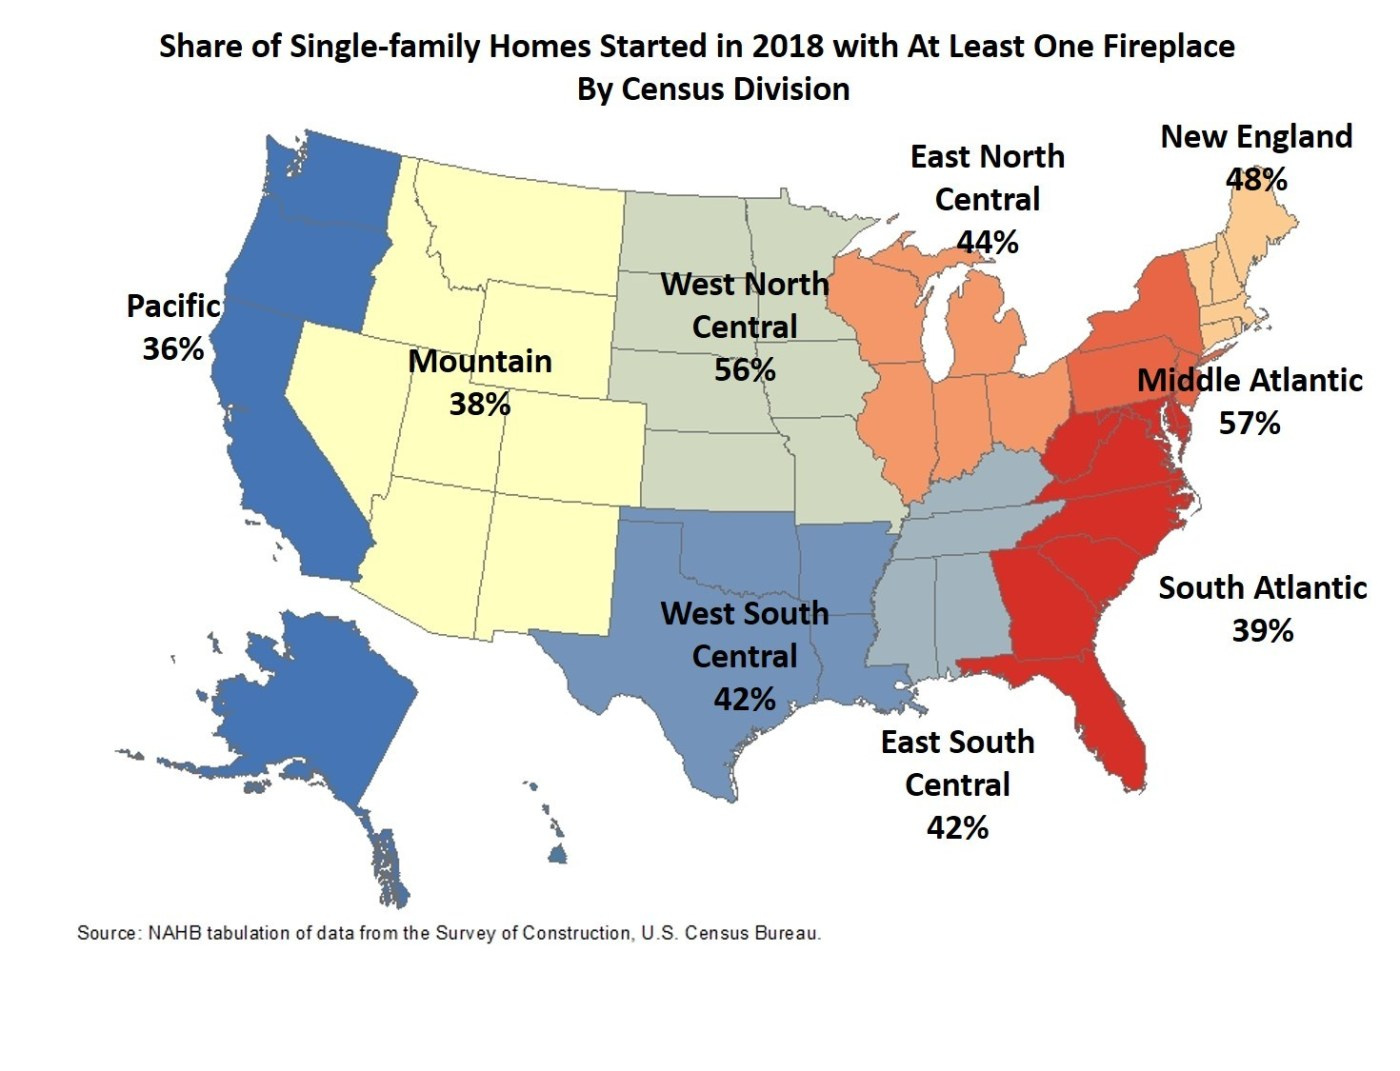 NAHB fireplace map. Visit source link at the end of this article for more information.